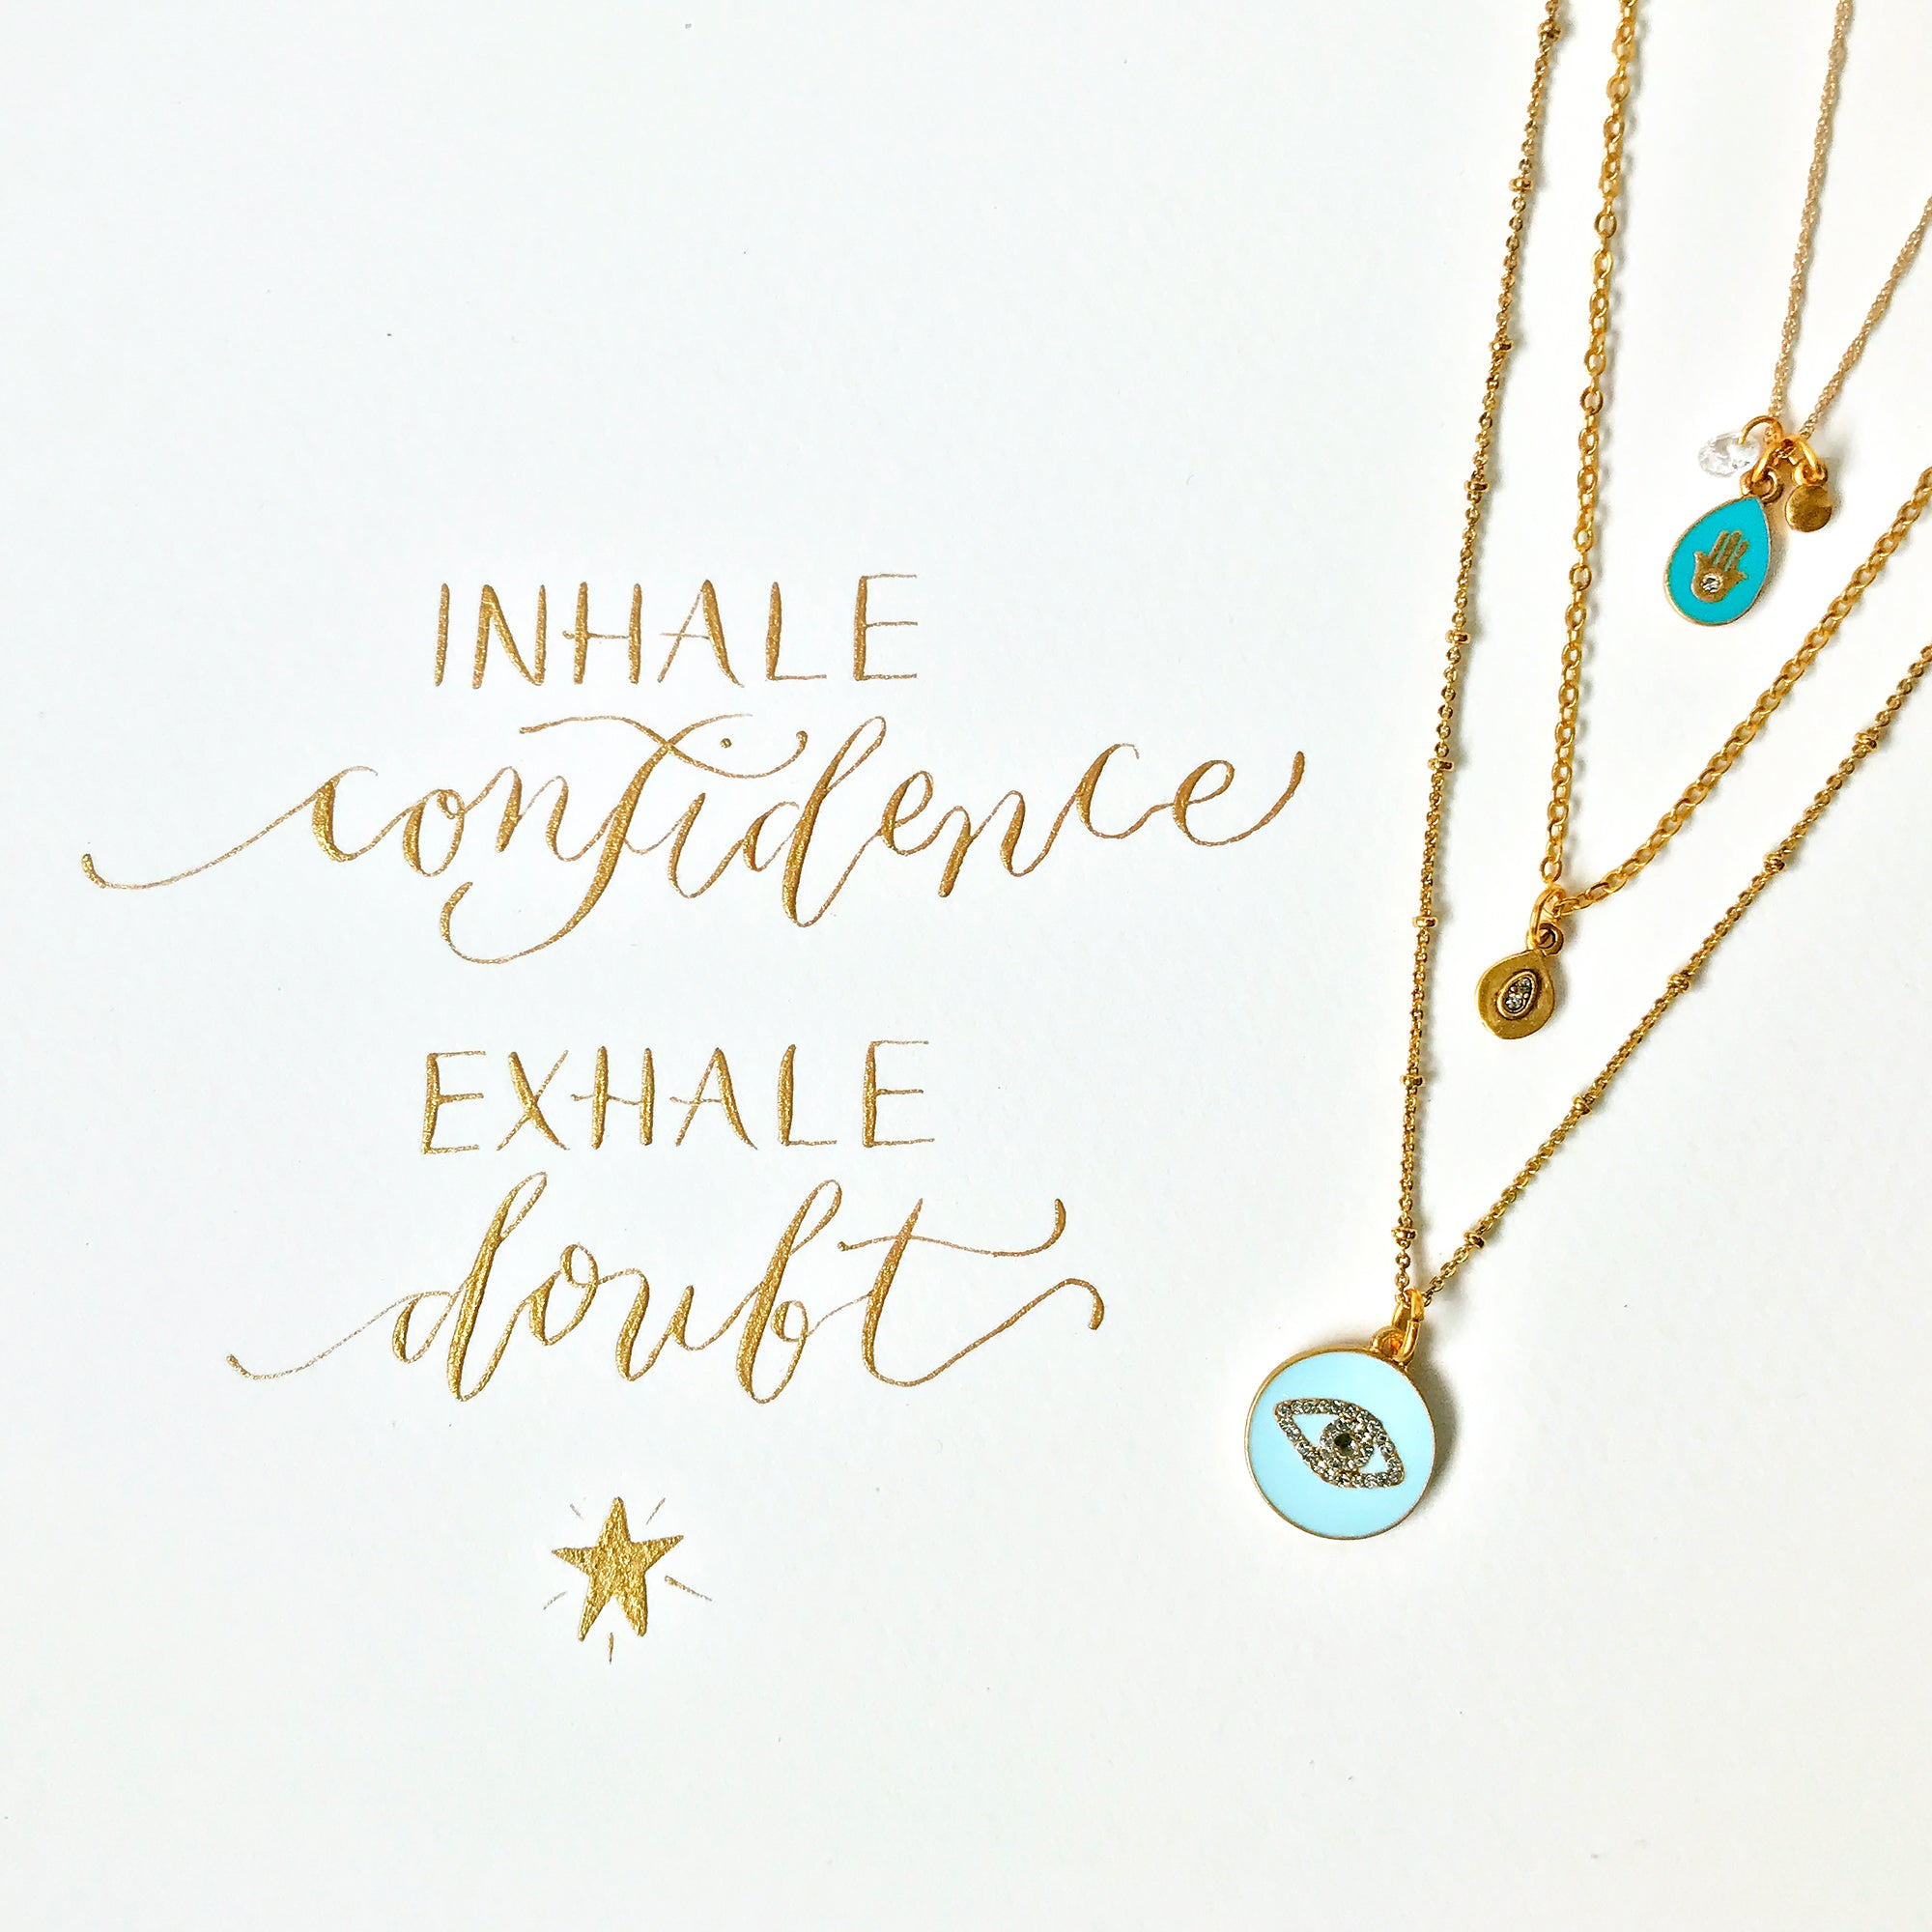 #SequinSayings - Inhale, Exhale...